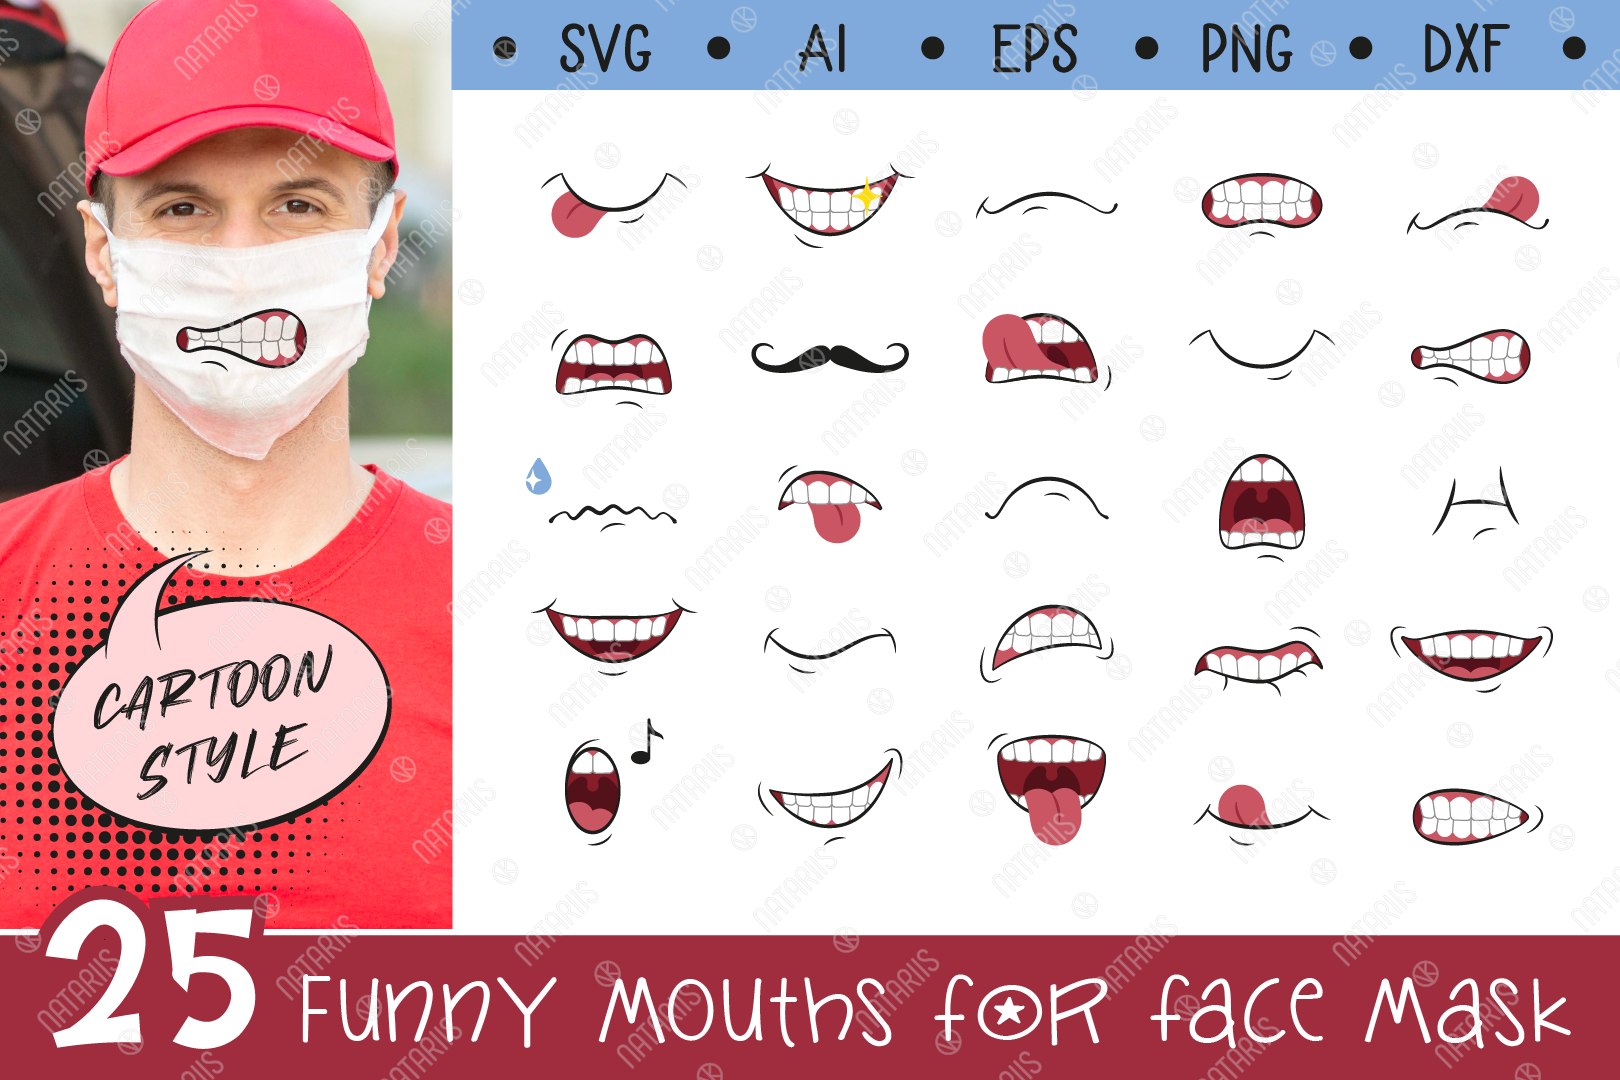 Download Free 25 Funny Mouths For Medical Face Mask Graphic By Natariis Studio SVG Cut Files